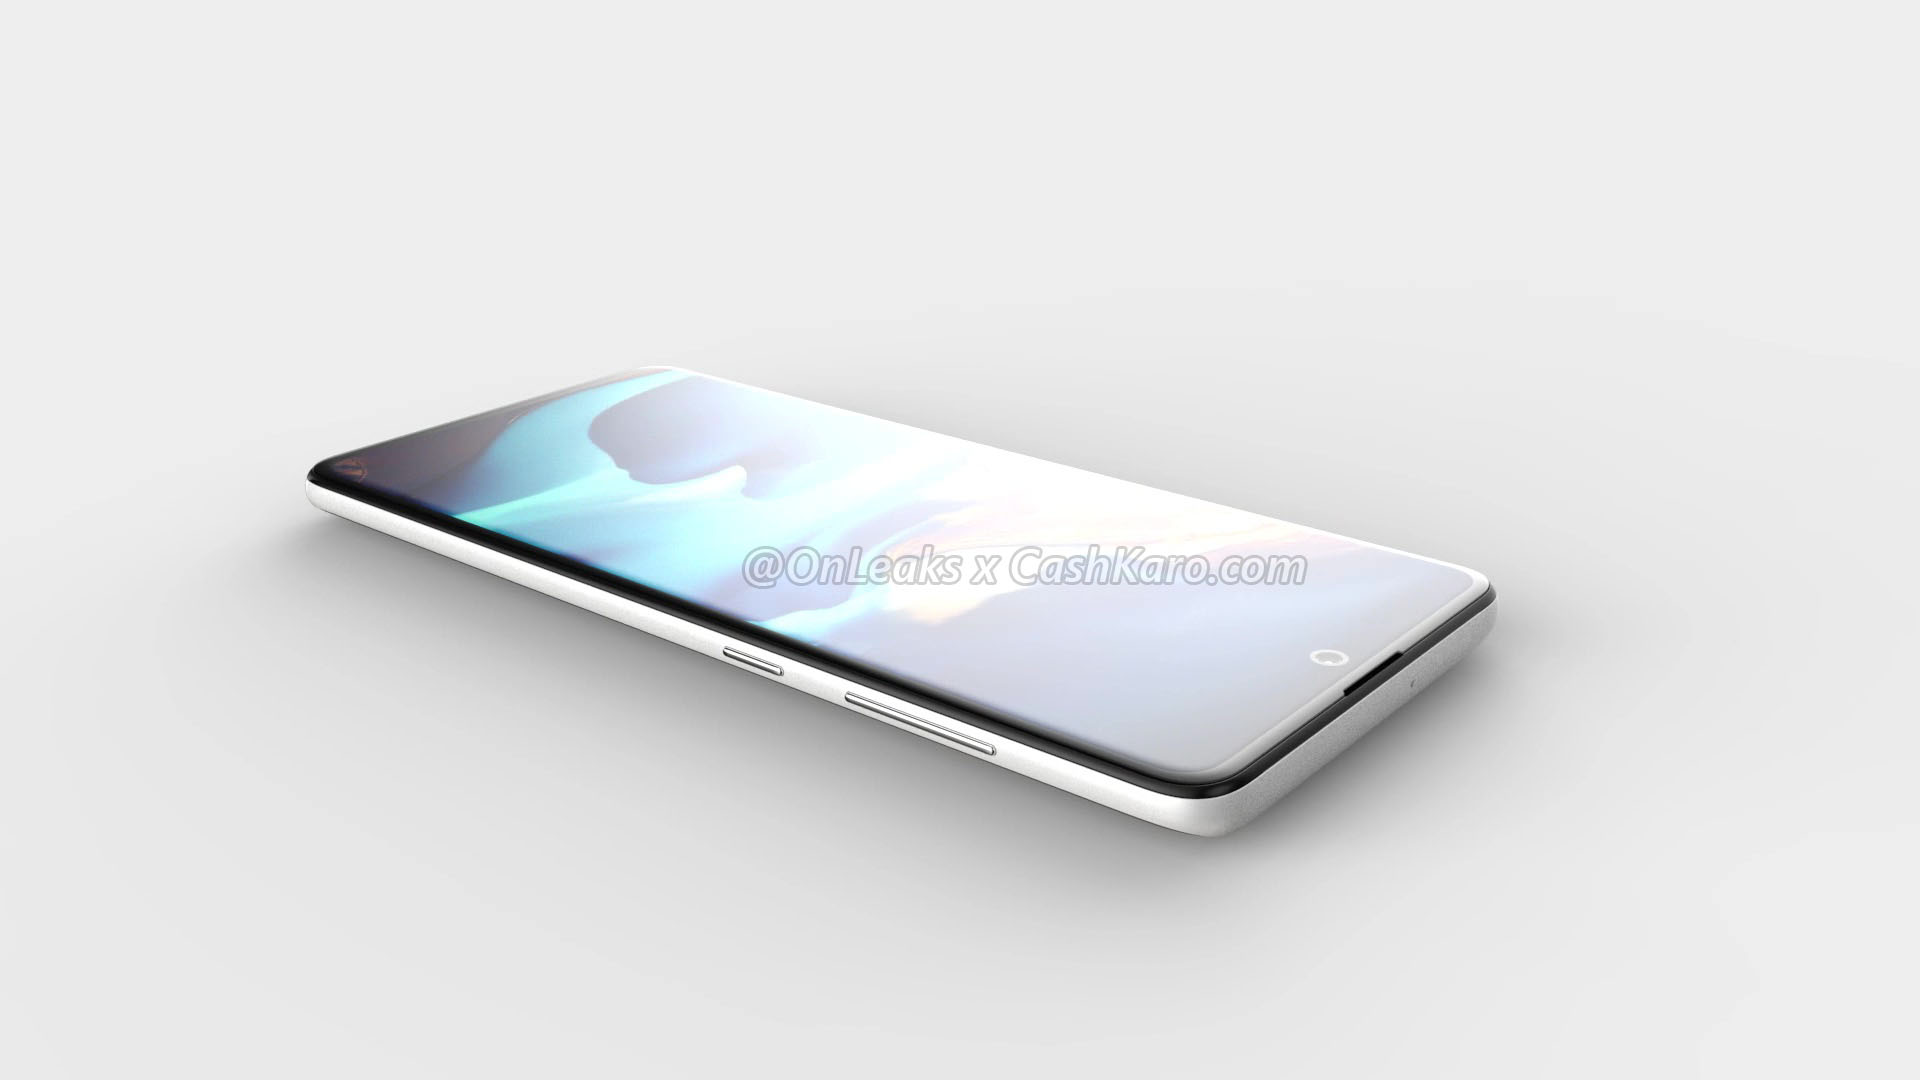 Samsung's upcoming Galaxy A71 smartphone render images and 360 Degree Video leaked online 2